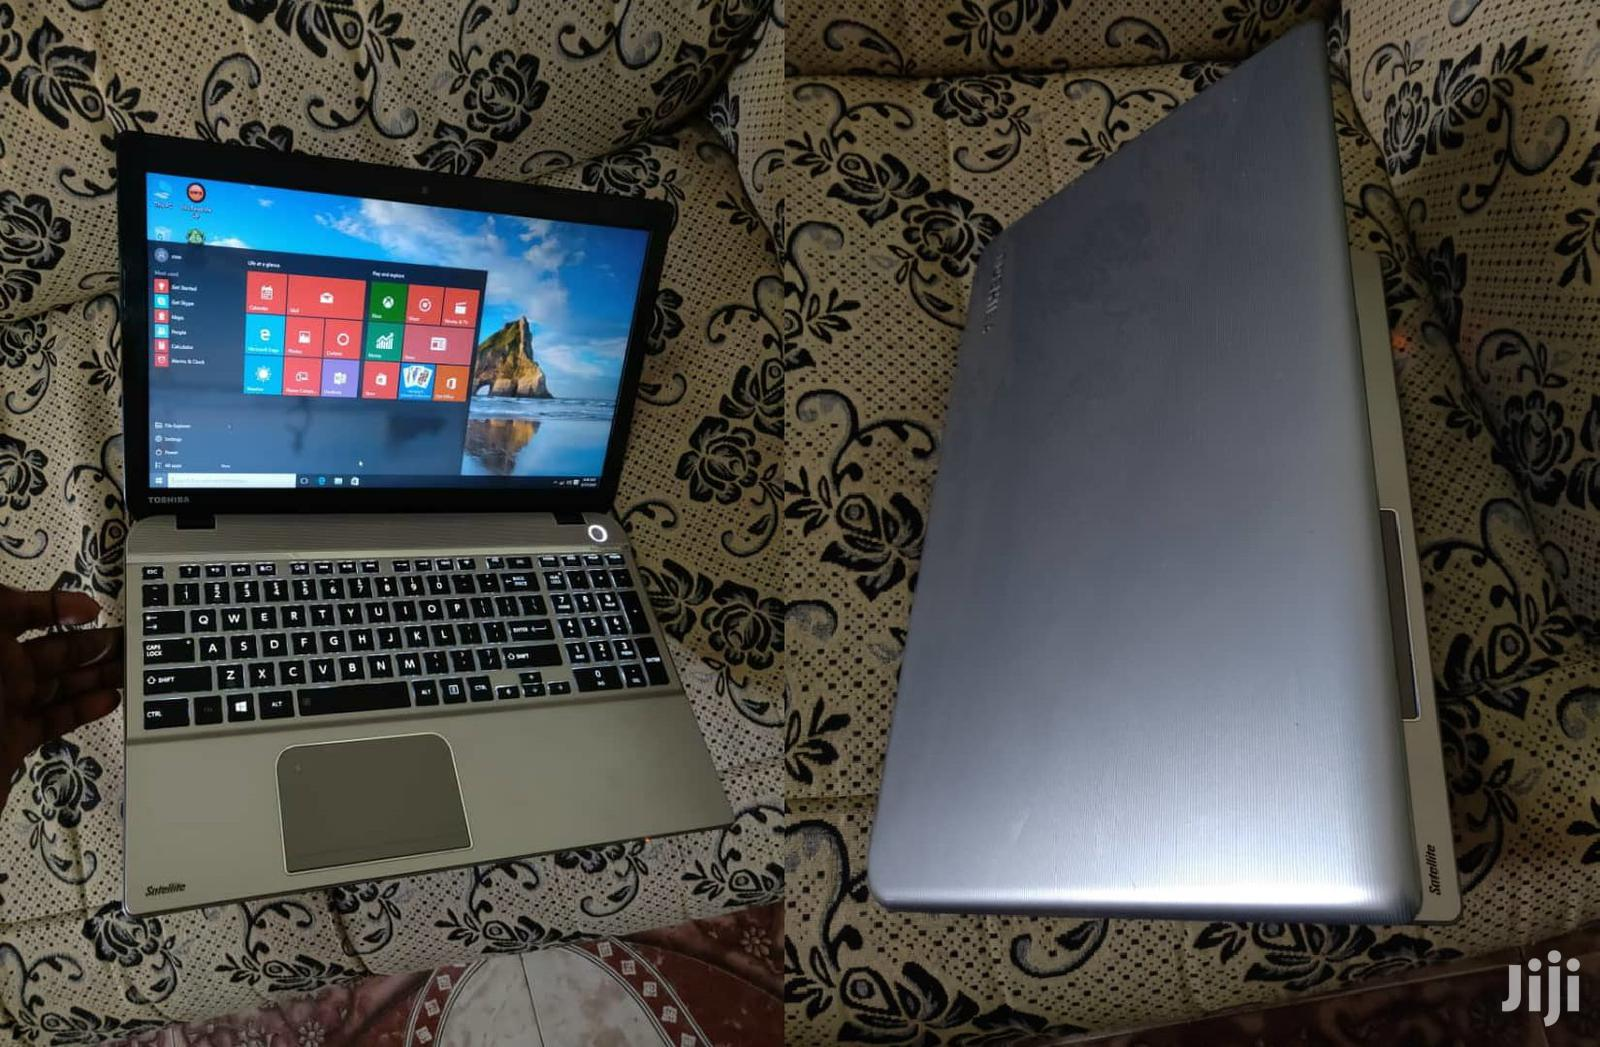 Laptop Toshiba Satellite A350 8GB Intel Core I5 HDD 500GB | Laptops & Computers for sale in Tema Metropolitan, Greater Accra, Ghana